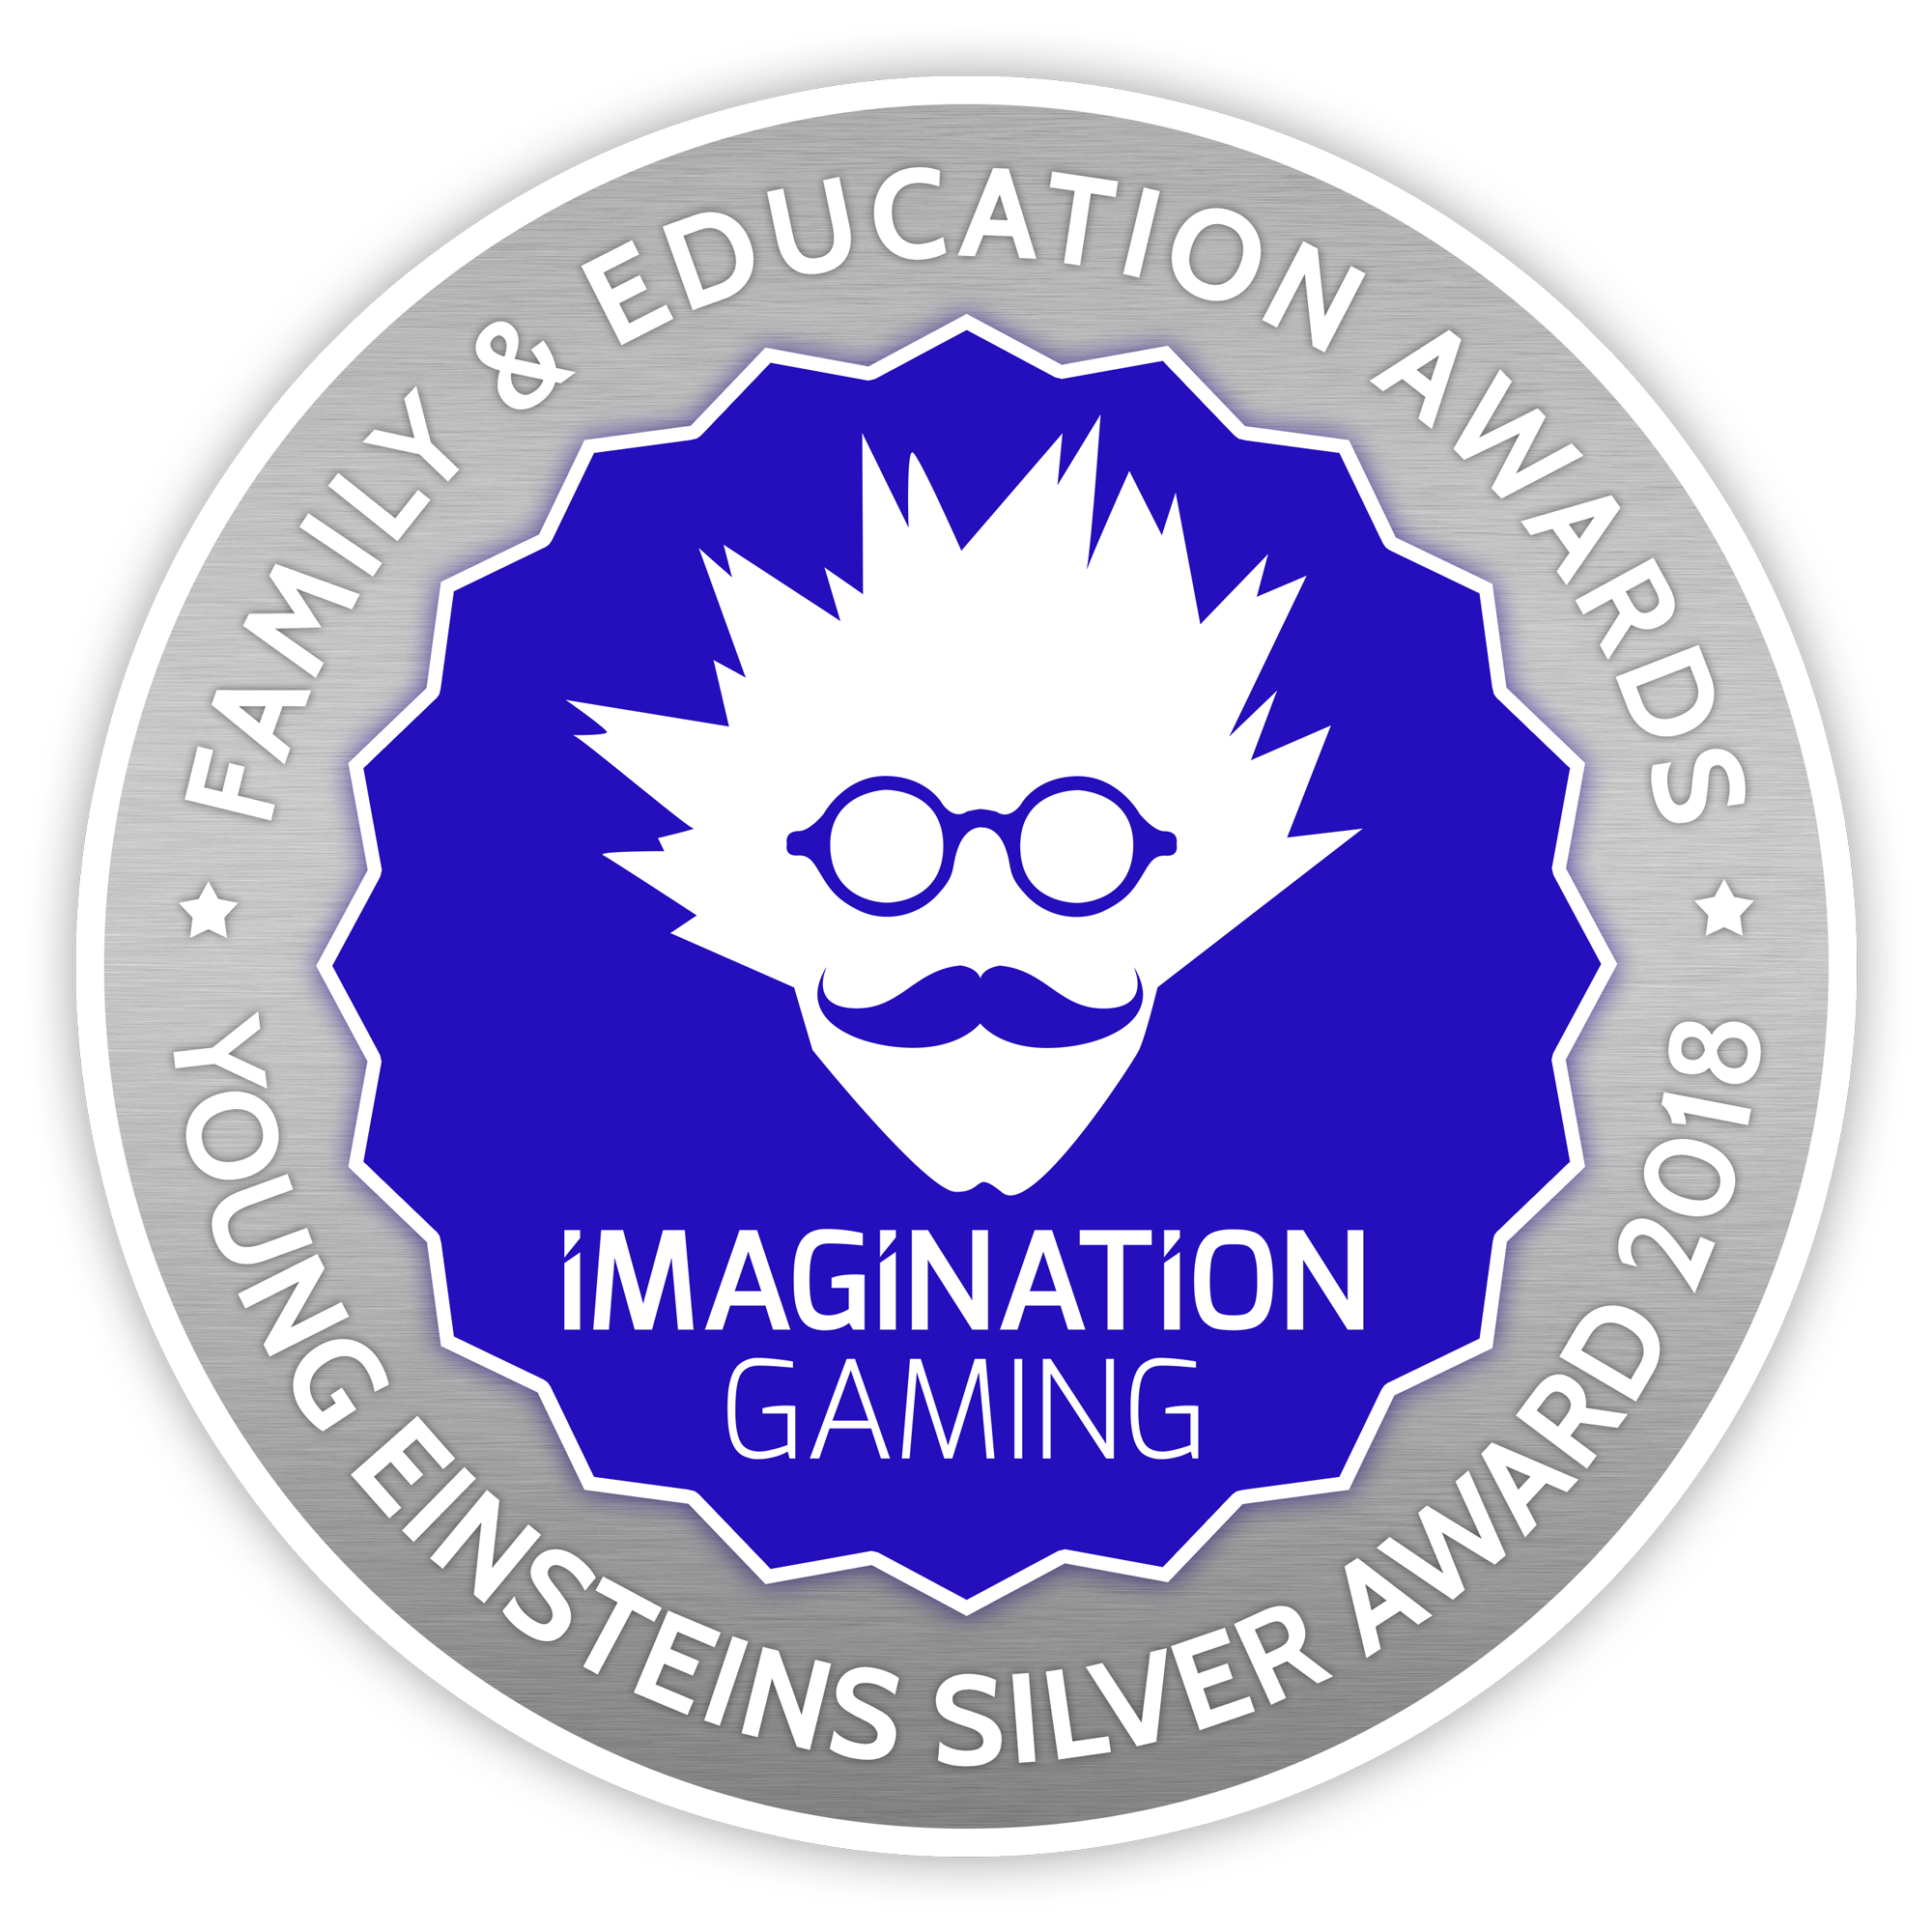 awards-badge-web-2018-young-einsteins-si